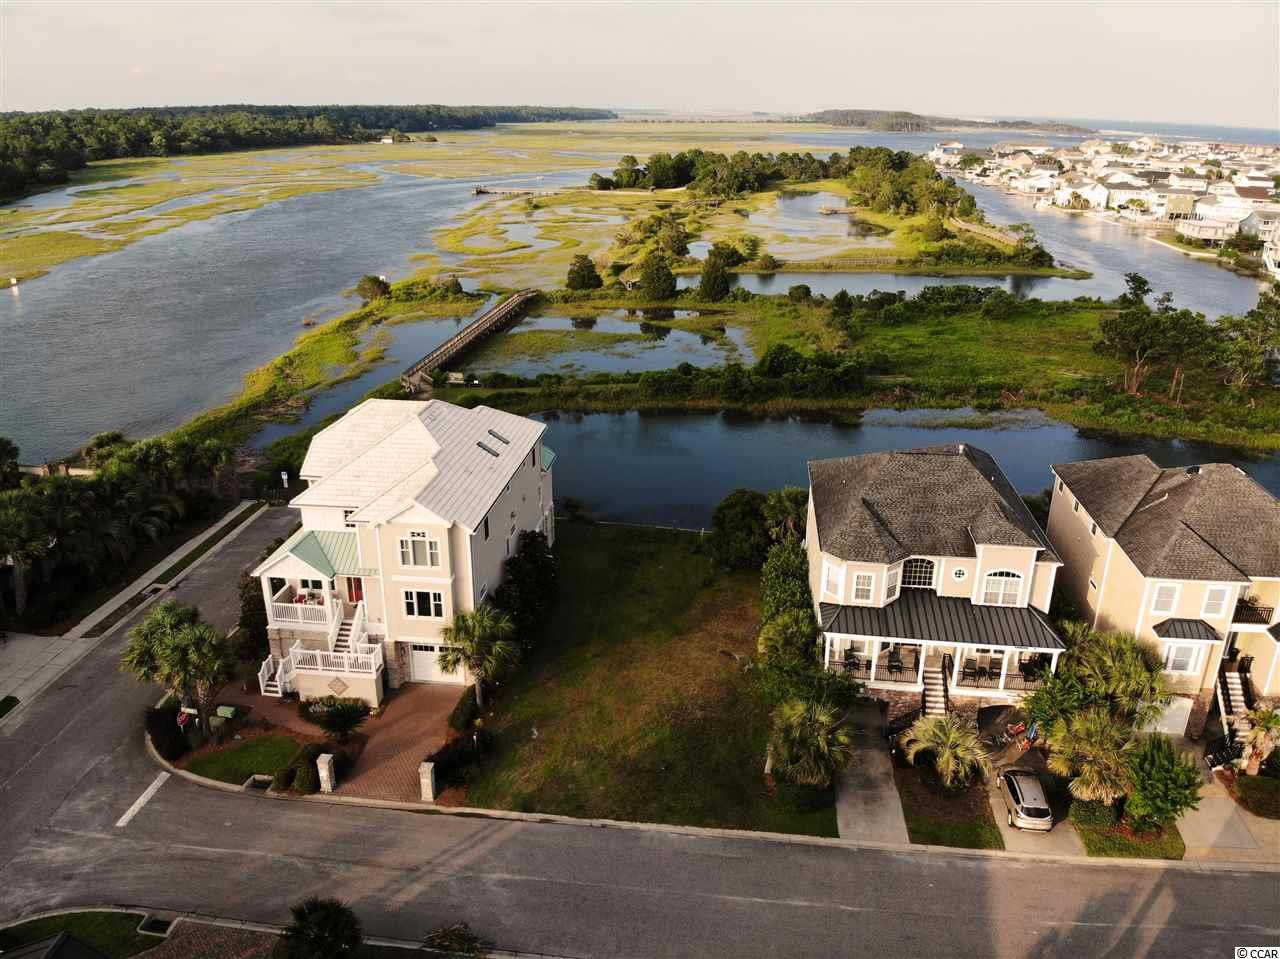 Waterfront Lot in the upscale island community of Heritage Shores in Cherry Grove.  Heritage Shores boasts beautiful, high end homes; underground utilities, public boat ramp and dock, nature trail for you to enjoy all the sights and scenes of salt water wildlife you  can ask for all only a few blocks to the beach.  Build your dream beach home in this exclusive water front community with amazing views!  This lot has a seawall and dock permit.